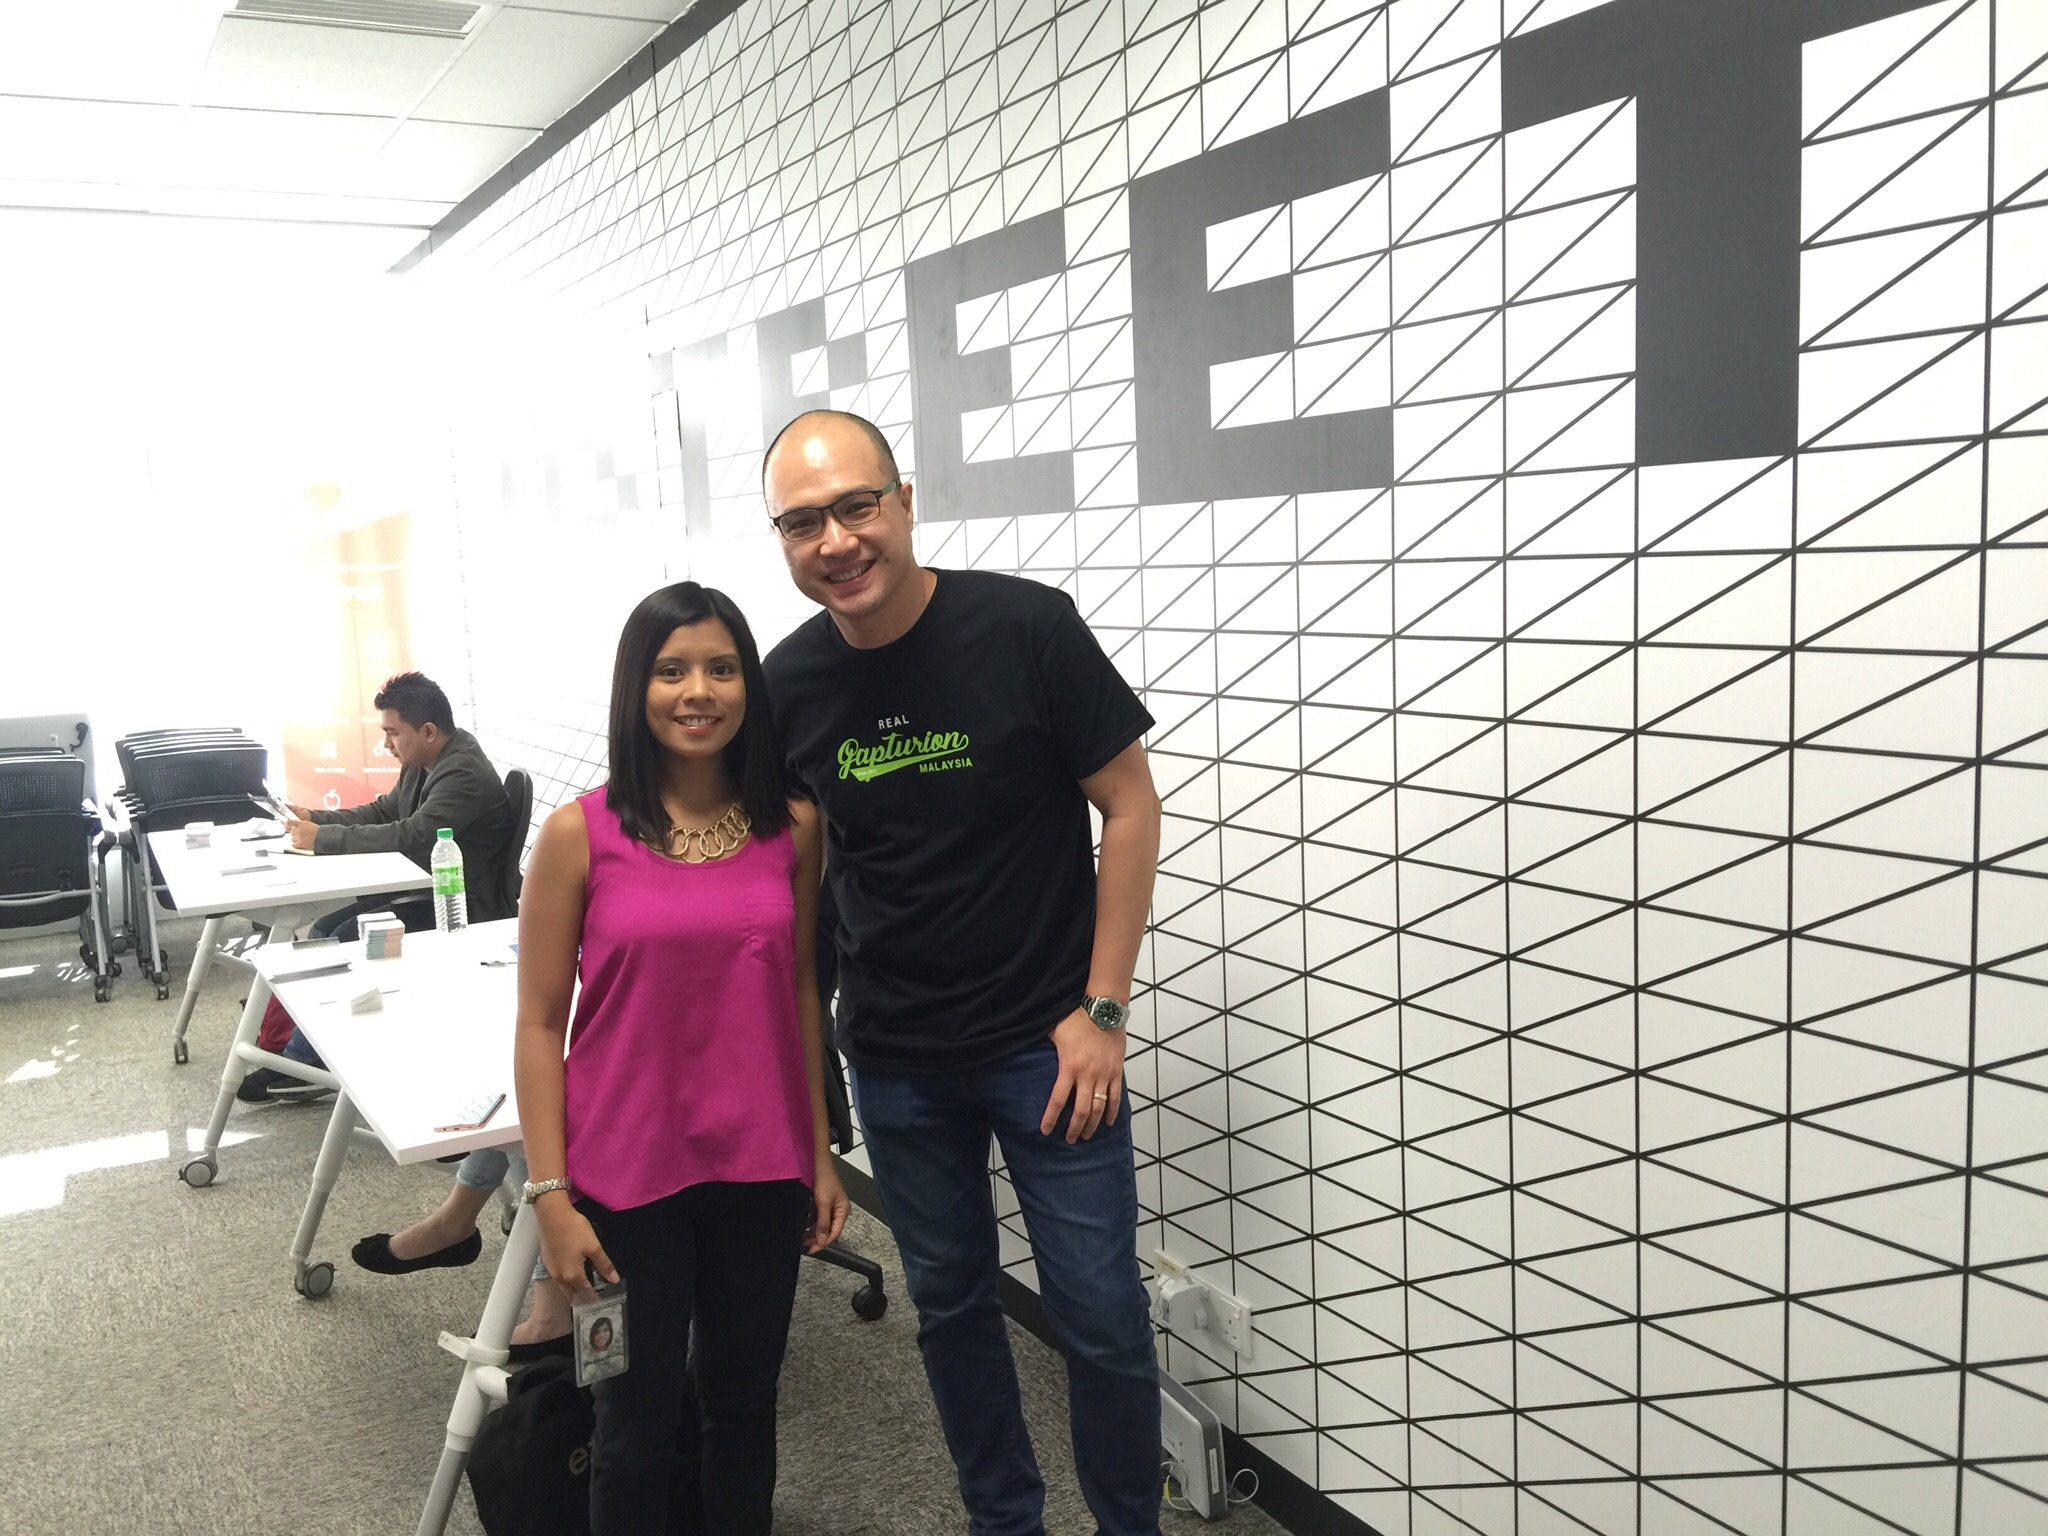 Stanley Chee and Denise Gamo (Google Malaysia's Head of SMB Marketing)